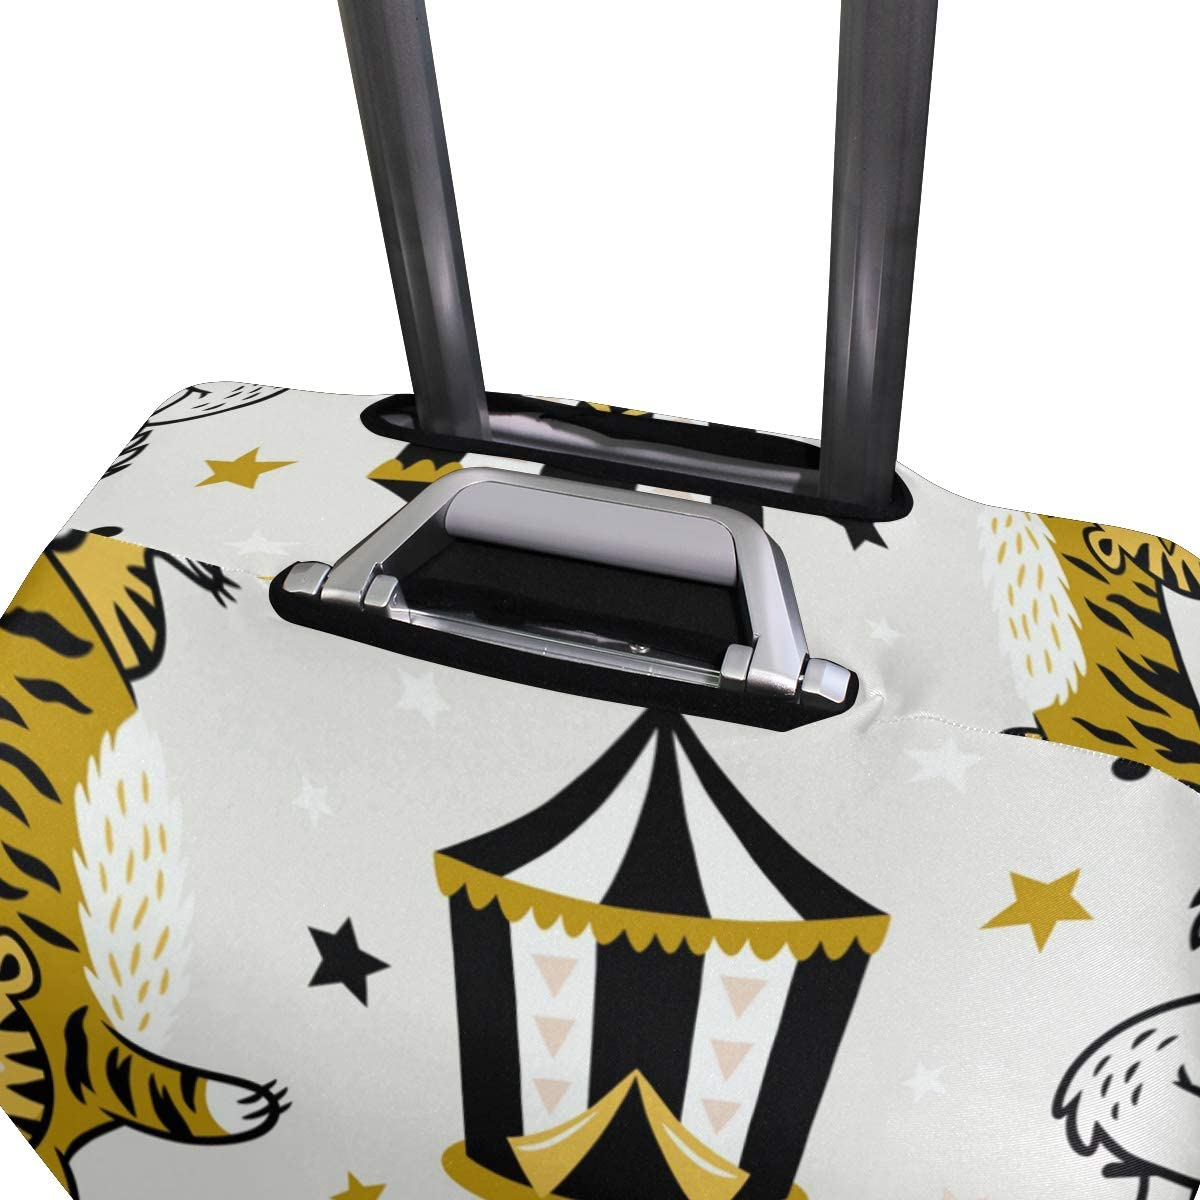 FOLPPLY Cartoon Circus Animal Lion Tiger Penguin Funny Luggage Cover Baggage Suitcase Travel Protector Fit for 18-32 Inch